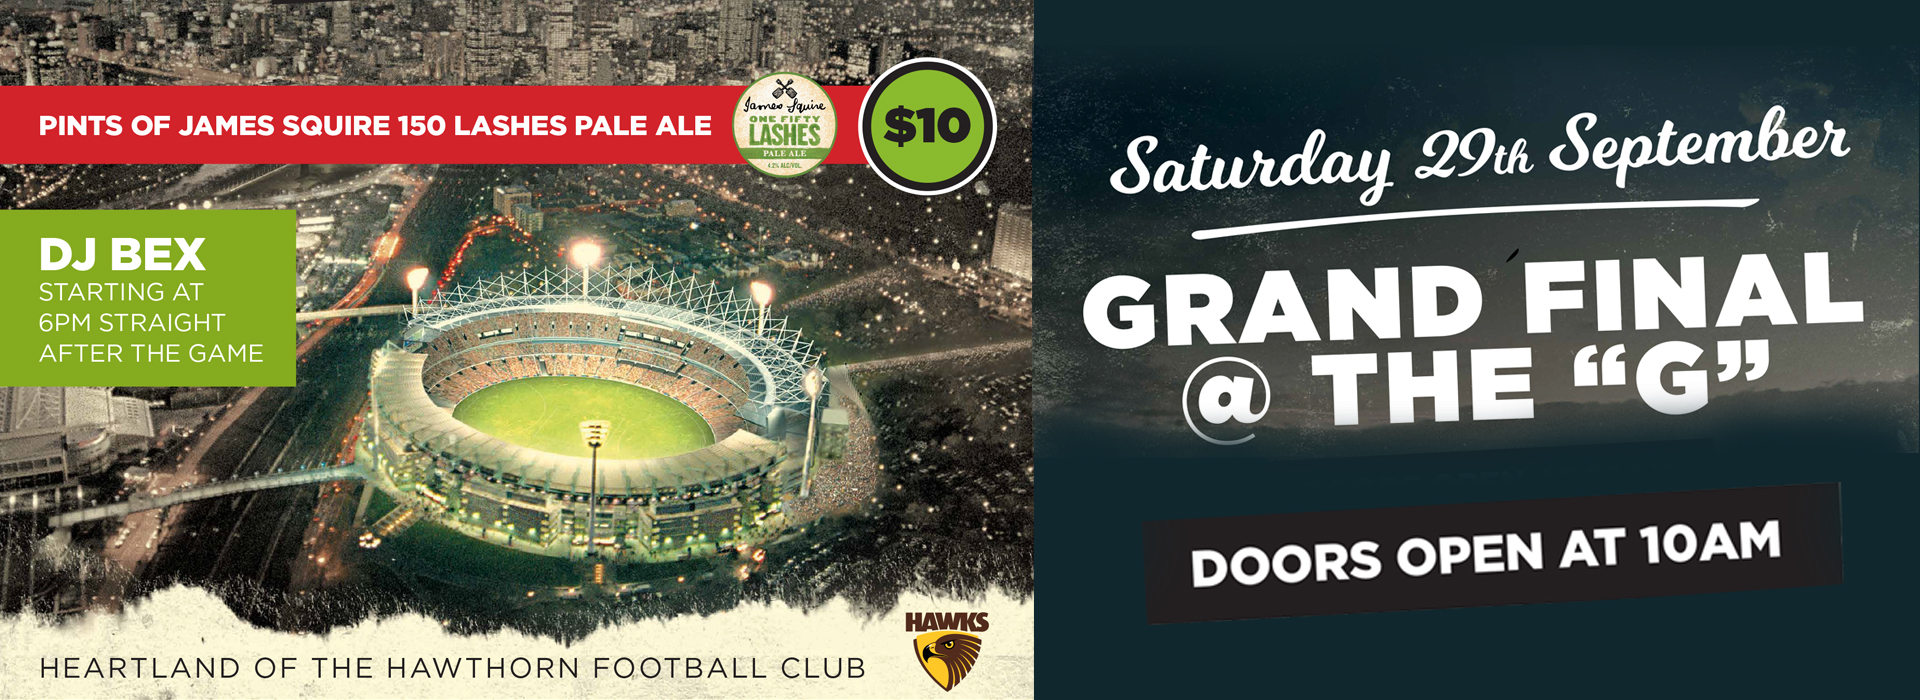 glenferrie hotel grand final day